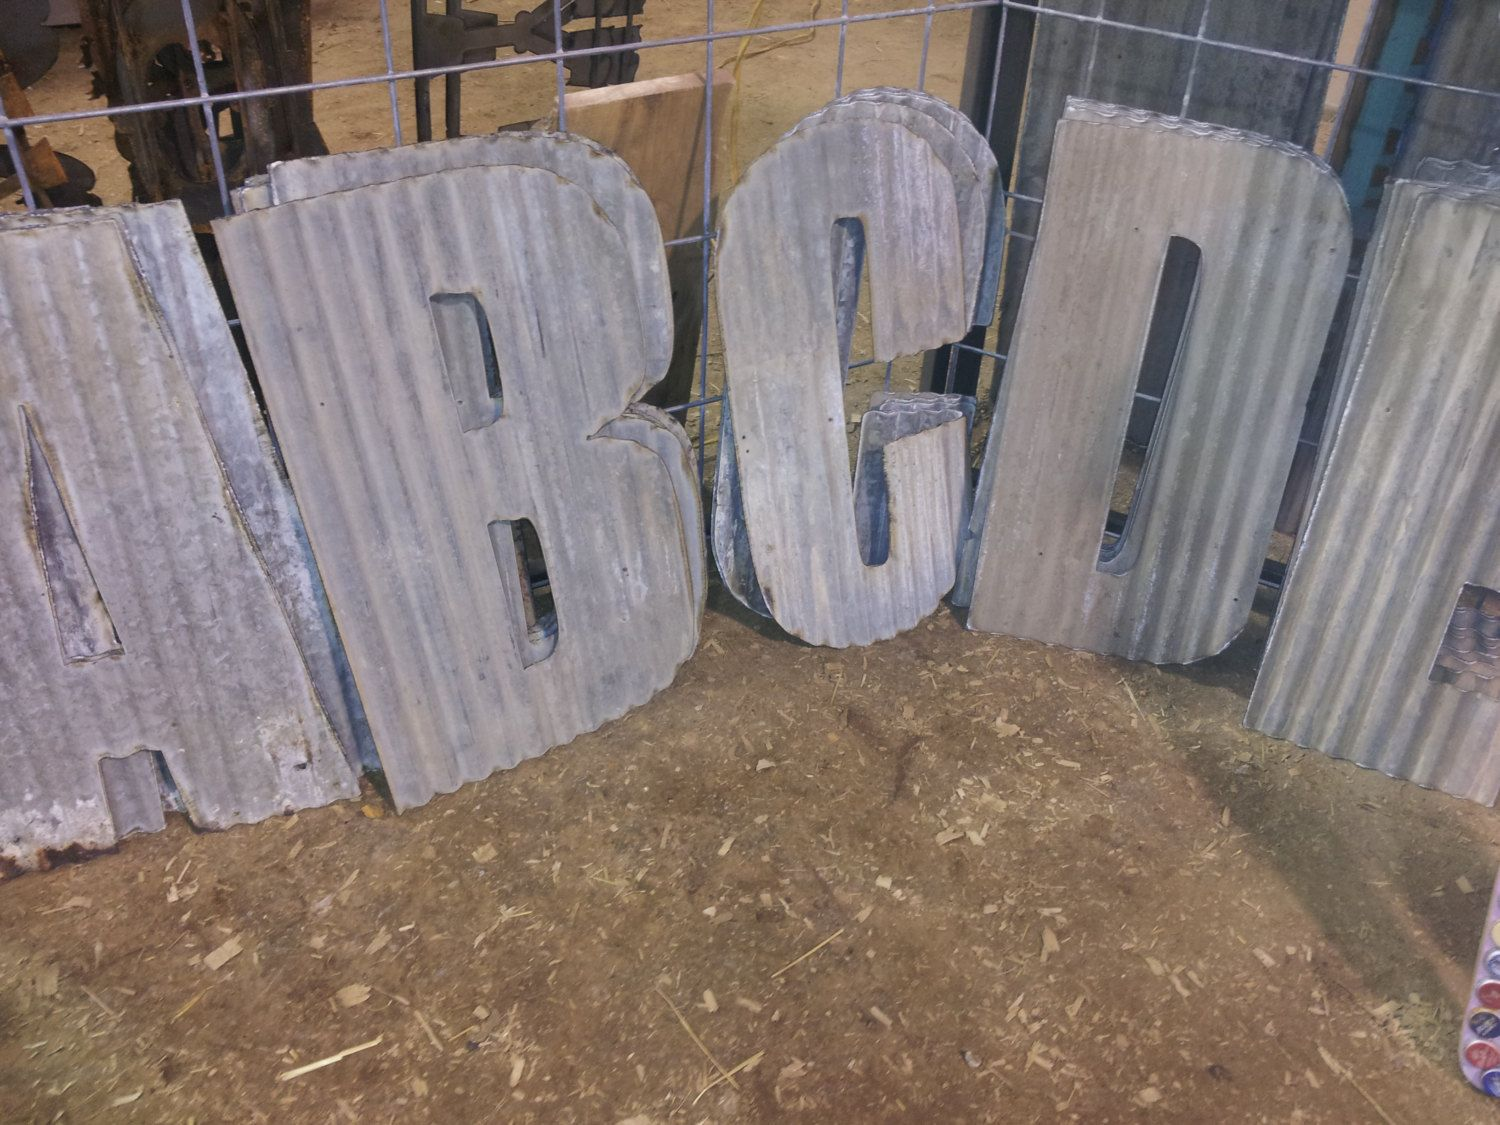 24 Tall Corrugated Metal Farmhouse Letters A Z And Numbers 0 9 Metal Letters Corrugated Metal Metal Working Projects